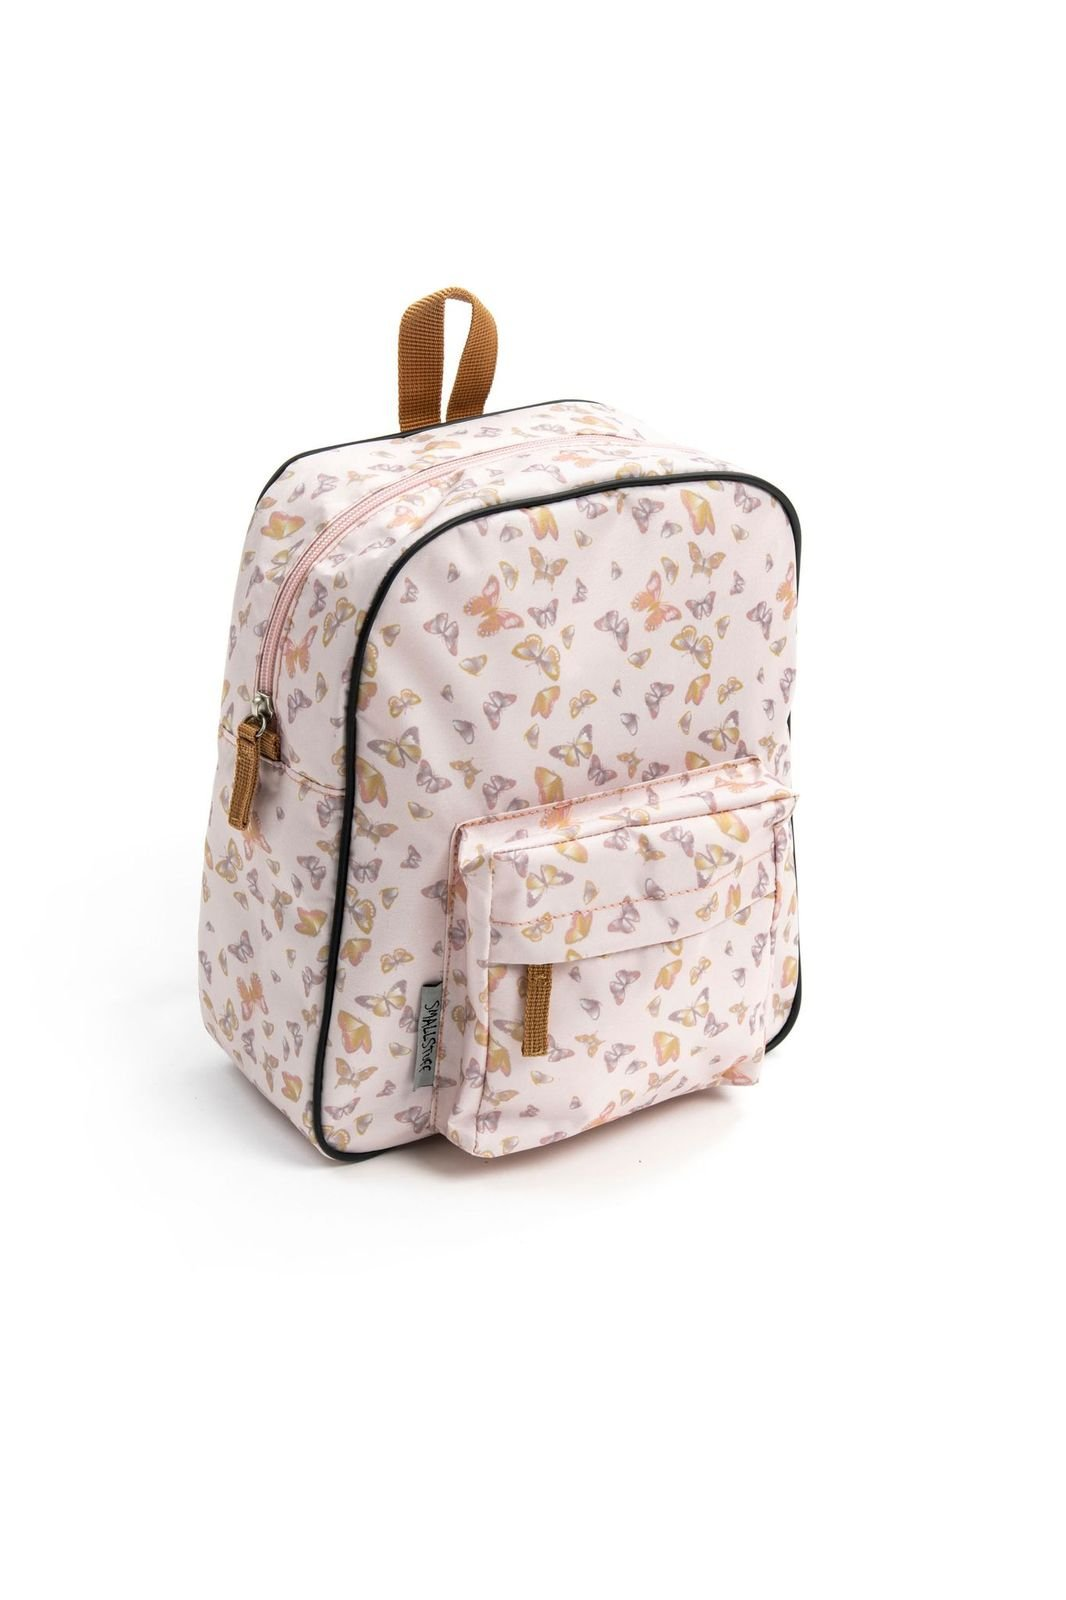 Smallstuff Small Backpack - Butterfly (83001-22)